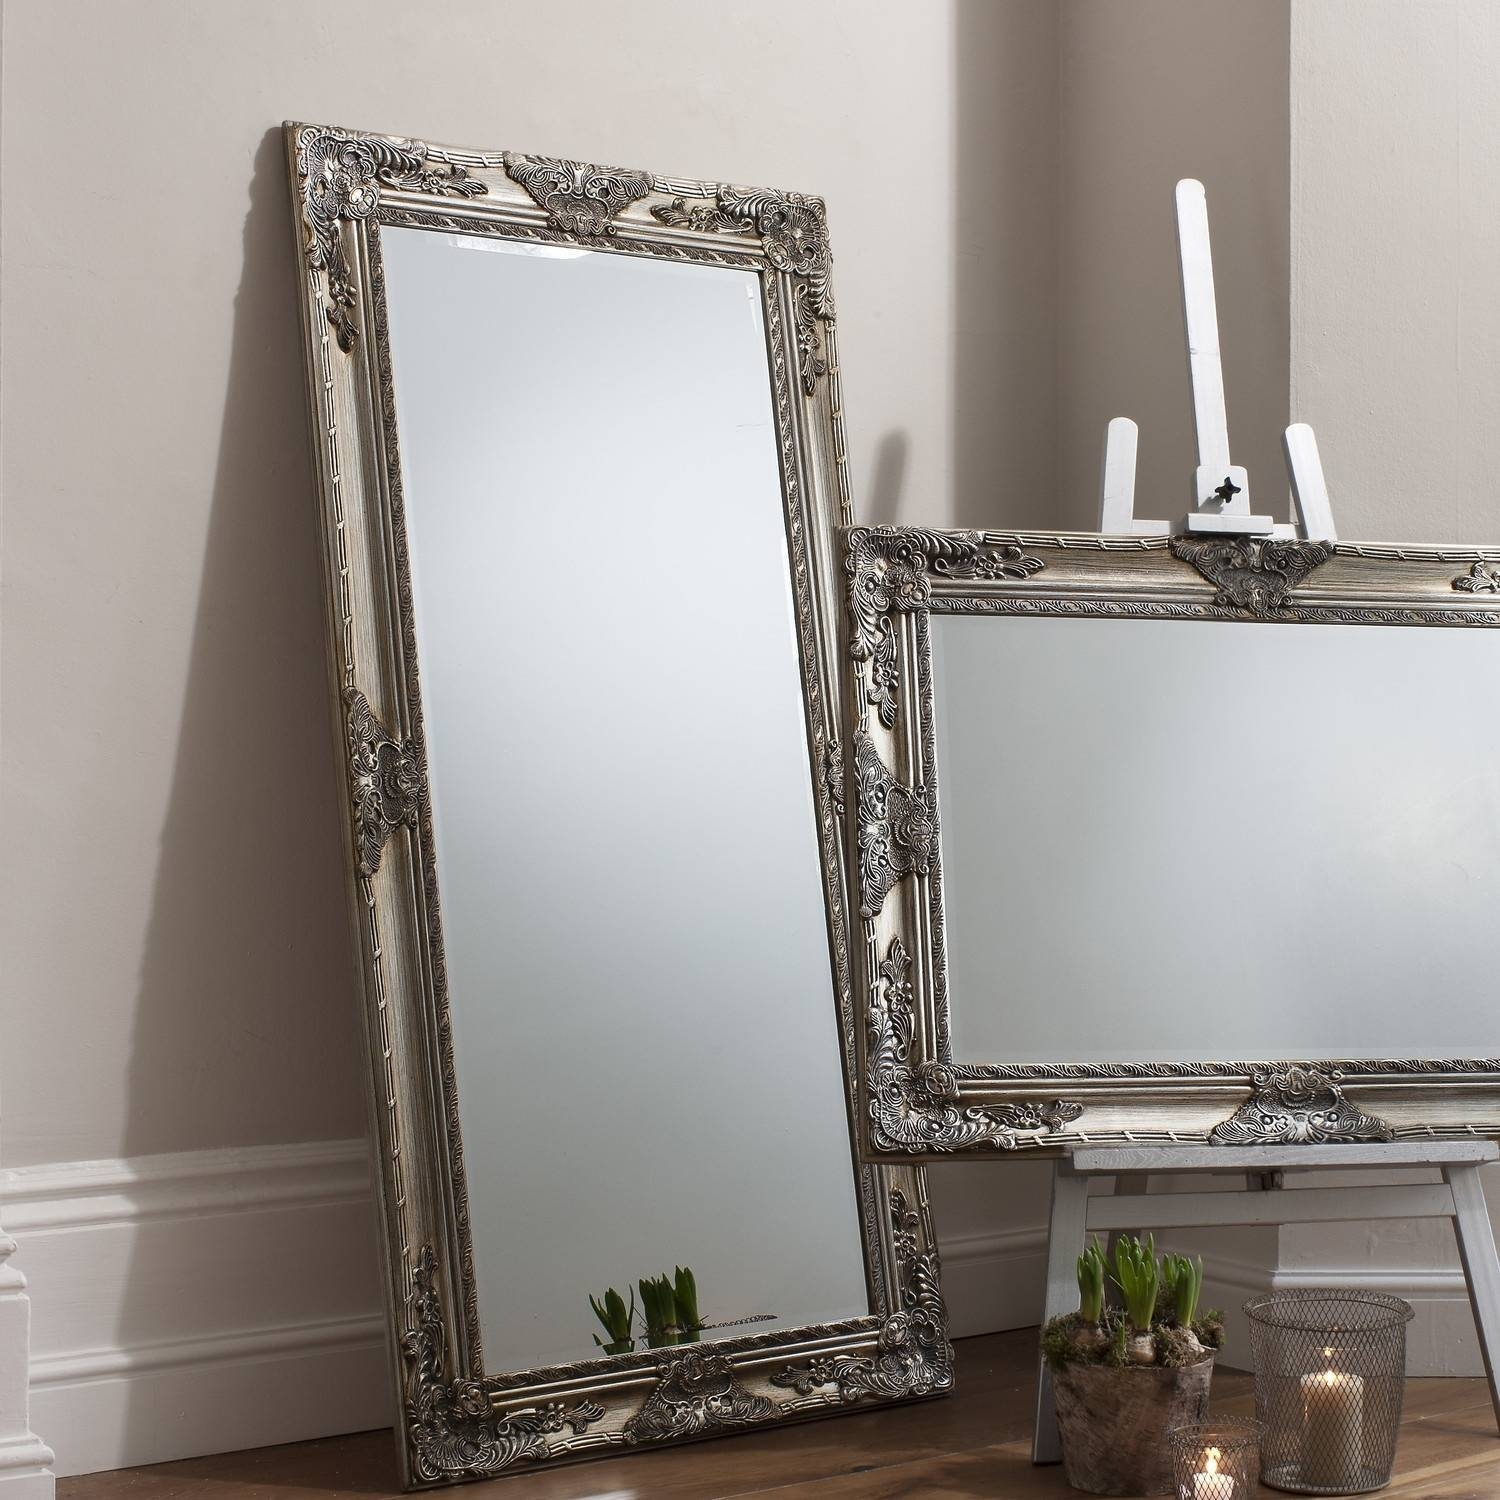 Best 15 of extra large floor standing mirrors for Extra large mirrors